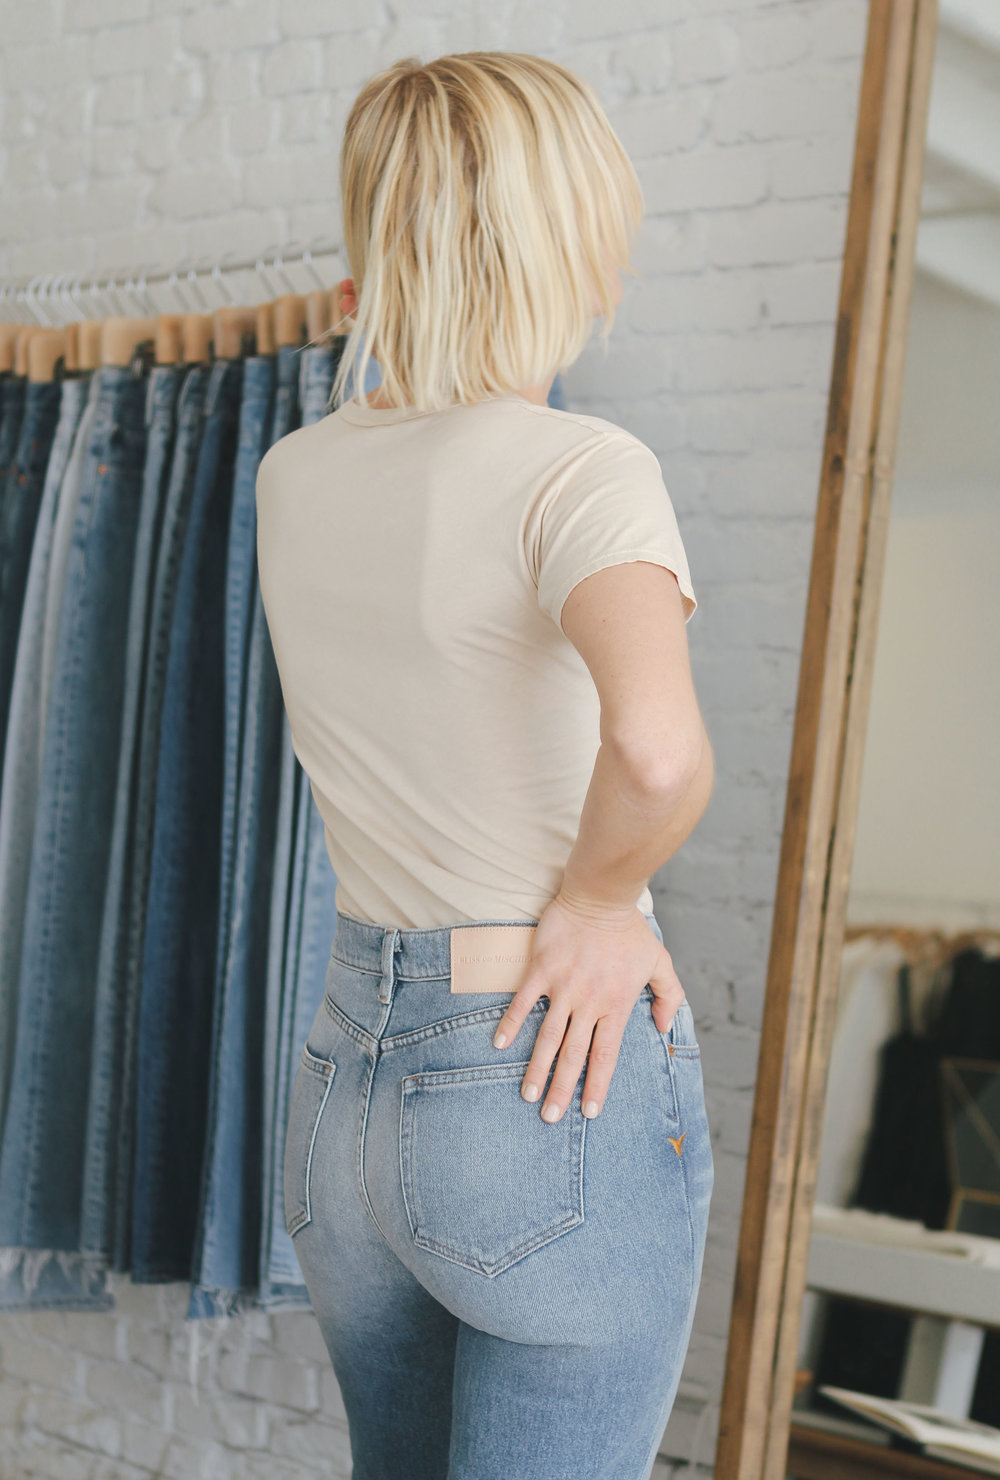 Candace wearing her Collector Fit denim in Mediium Wash